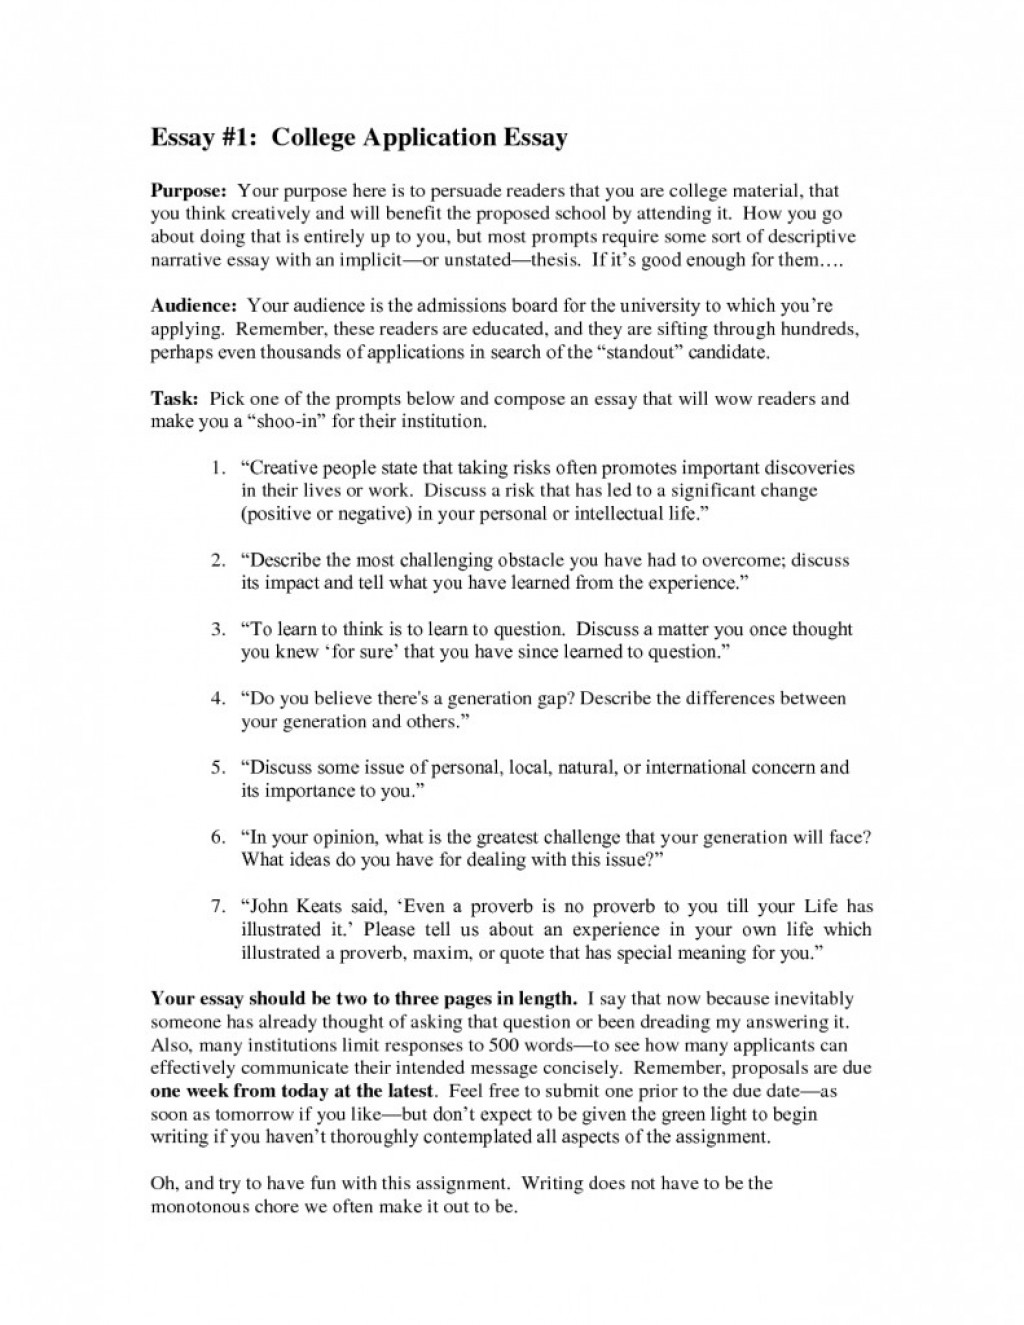 012 College Application Essay 791x1024 Example Prompt Unforgettable Examples Uc #1 5 Large